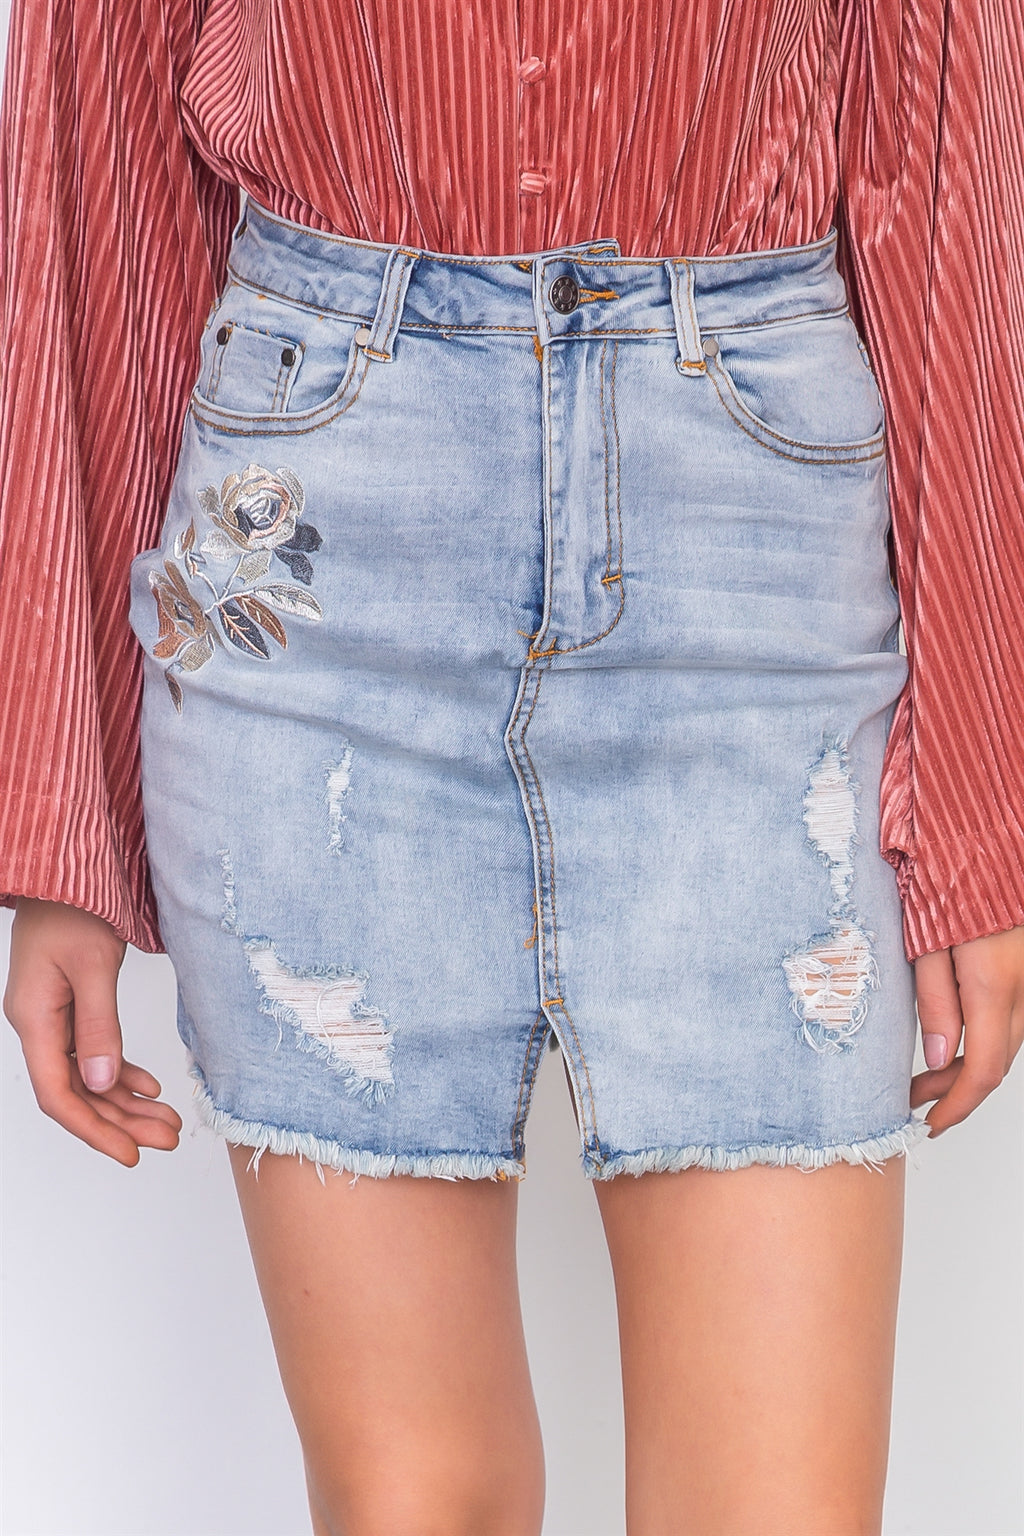 Denim floral embroidered distressed mini skirt